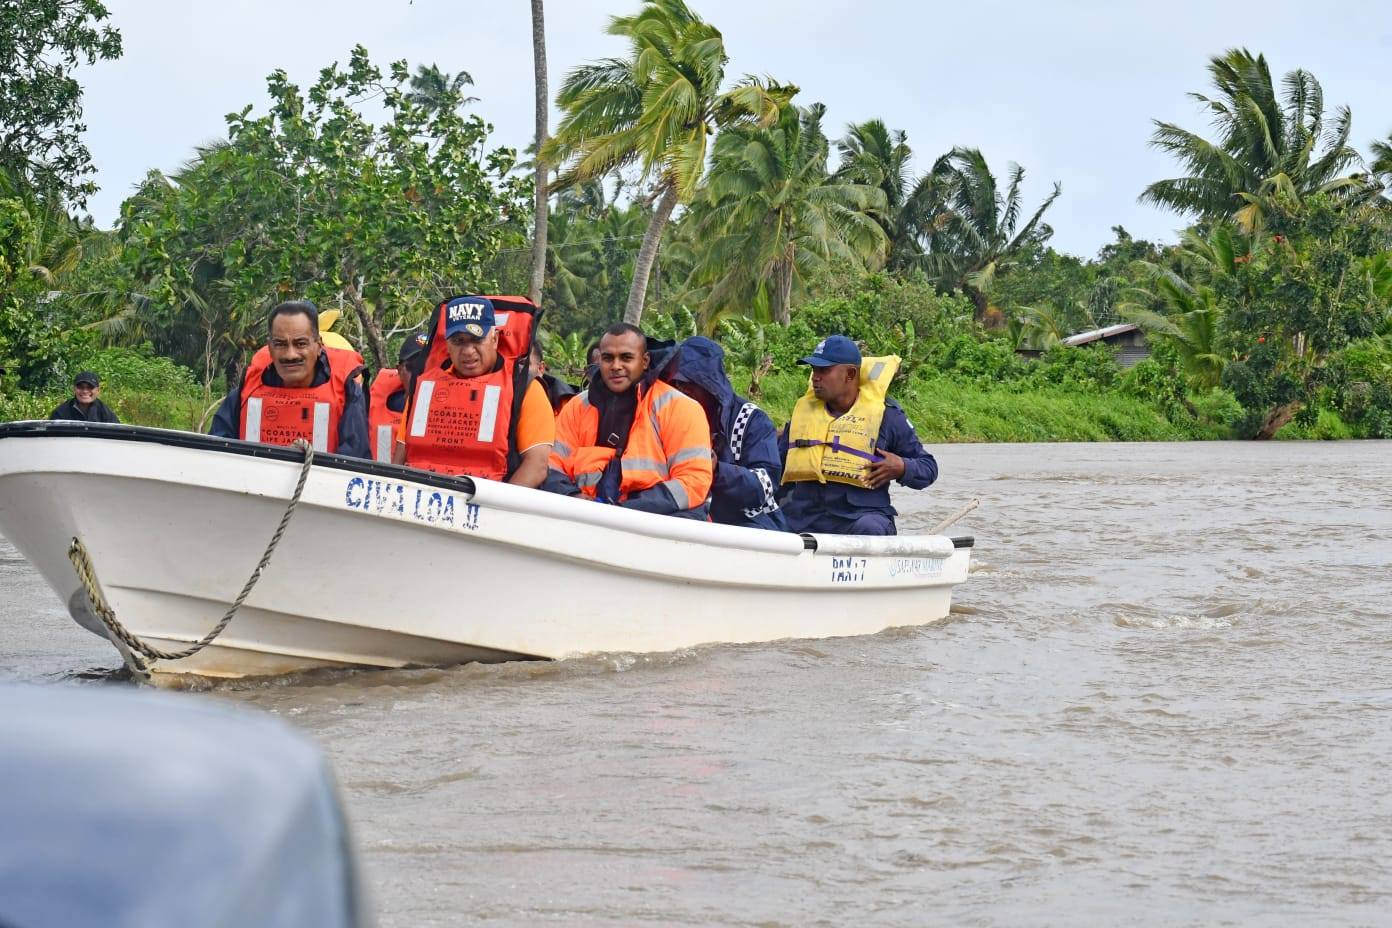 Cyclone Yasa levels entire villages, leaves extensive damage in Fiji